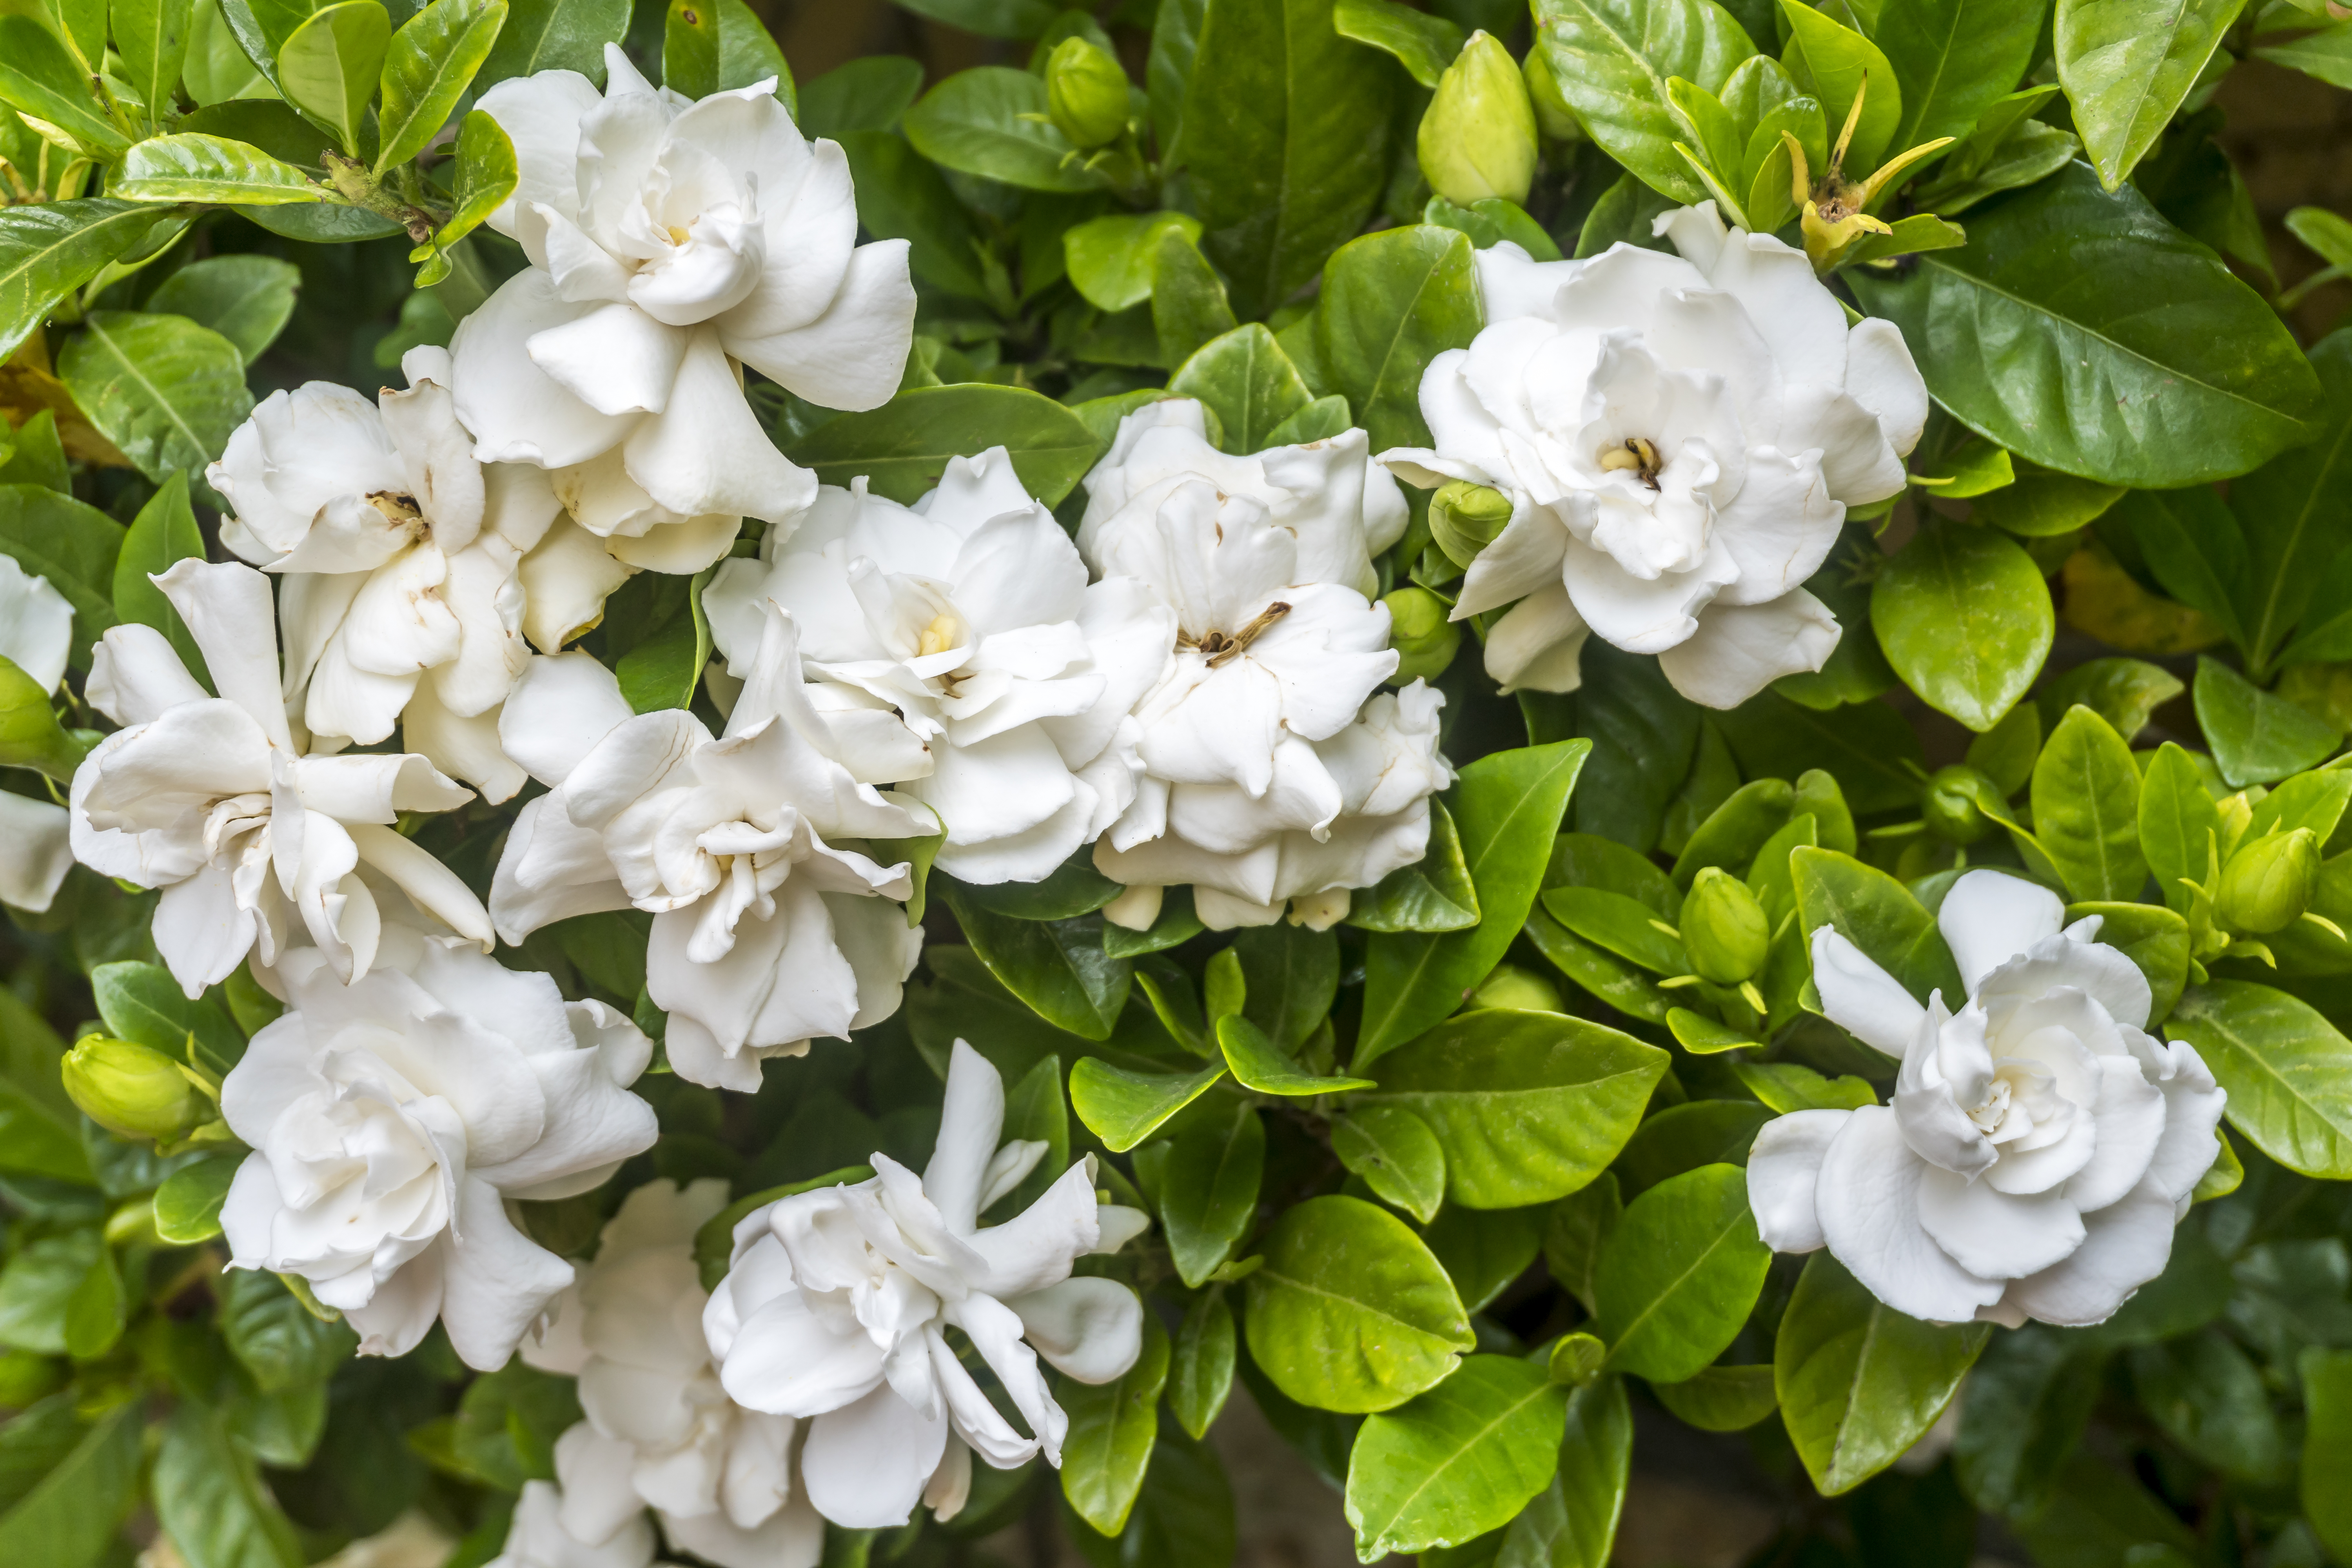 How To Trim Overgrown Gardenias